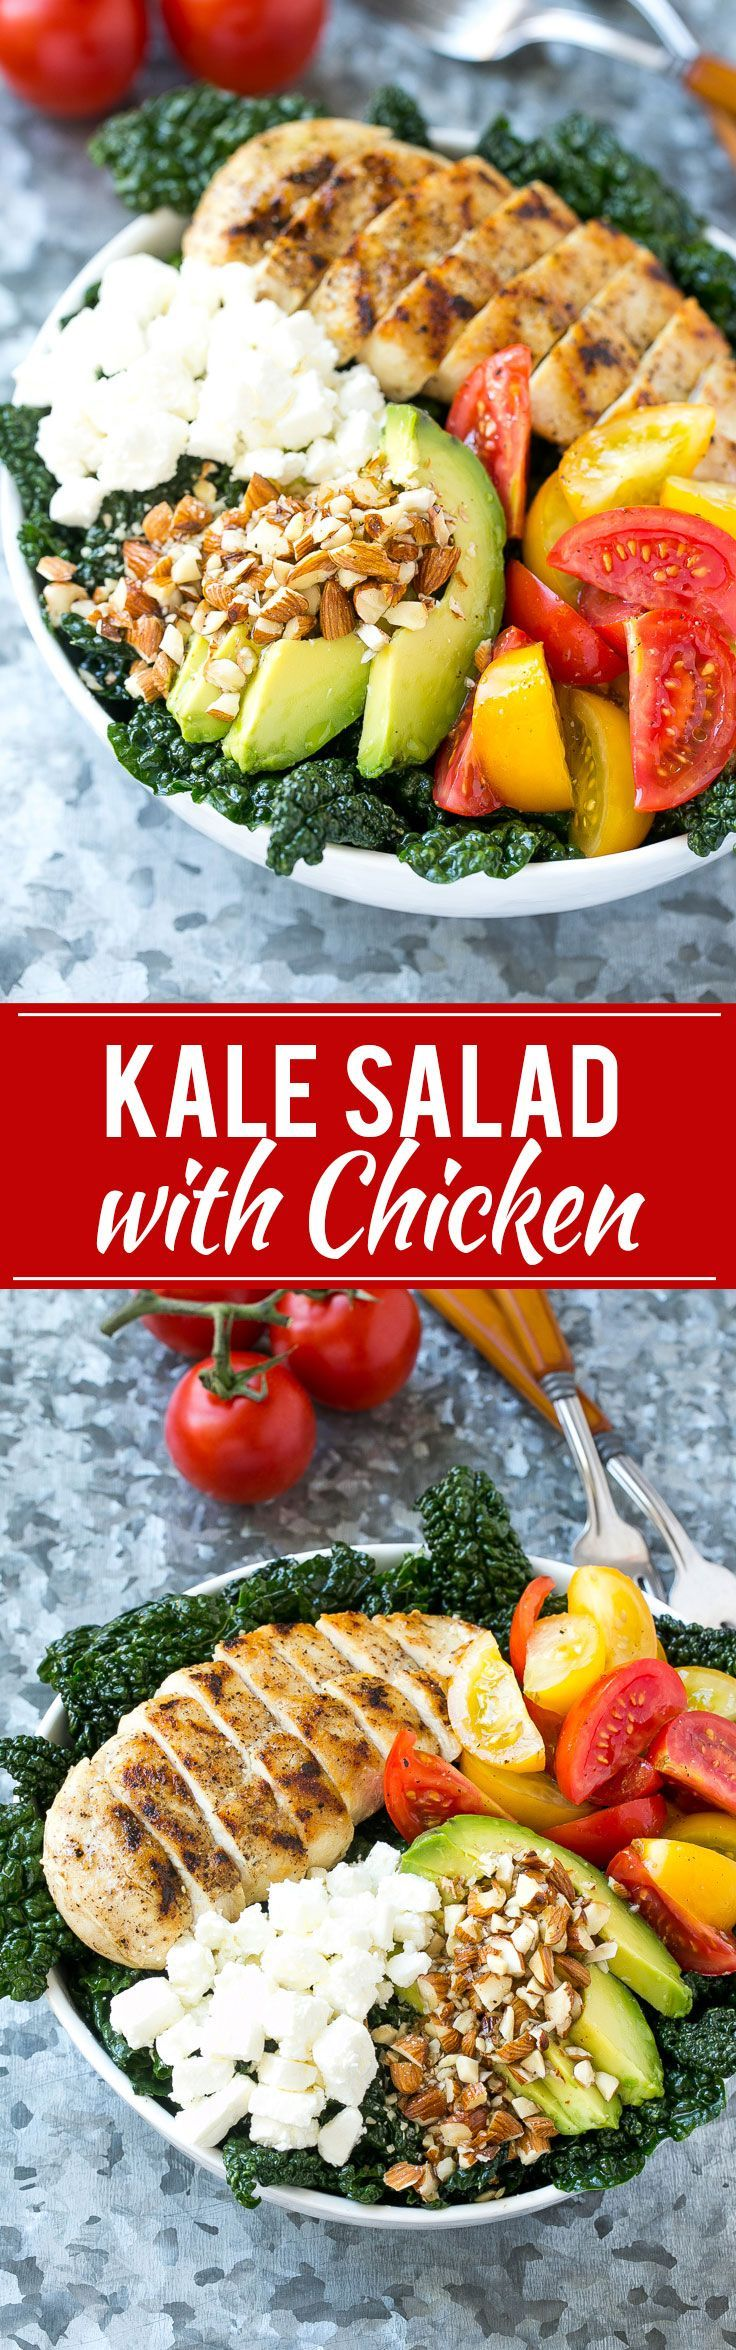 This recipe for Tuscan kale salad is full of kale, grilled chicken, avocado, tomatoes, almonds and feta cheese, all tossed in a simple lemon dressing. An easy and healthy meal!